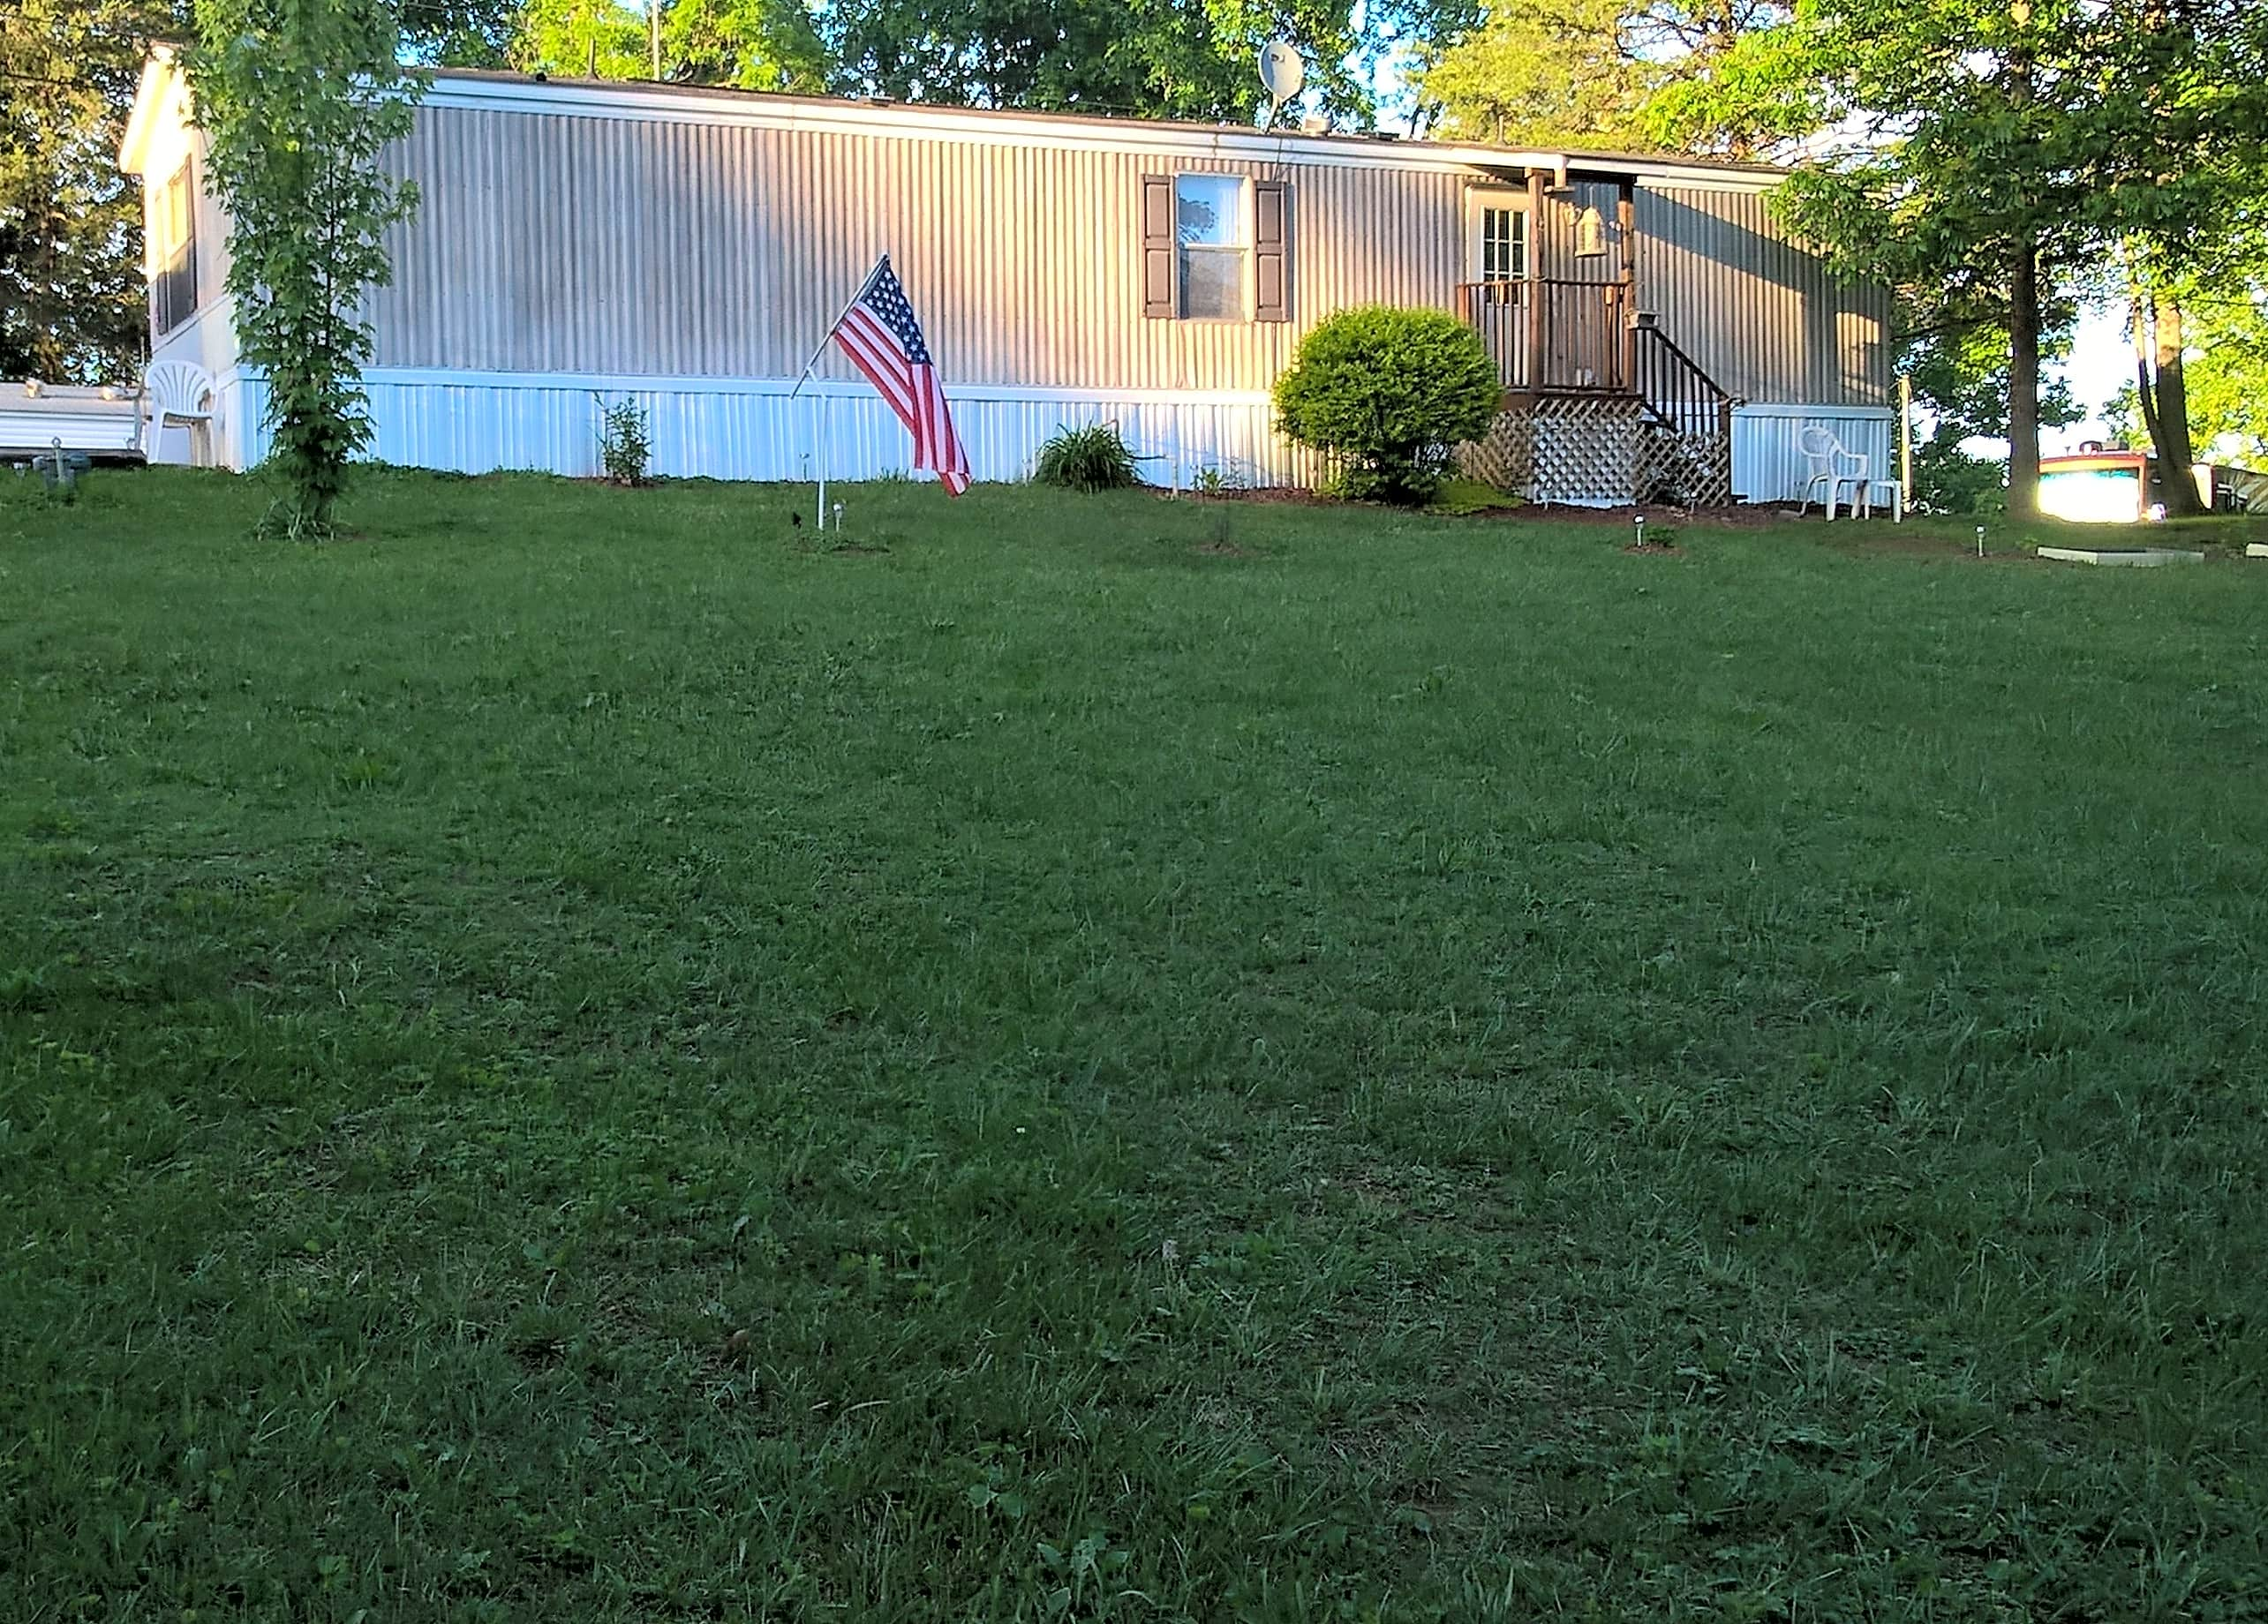 House for Rent in Parkersburg